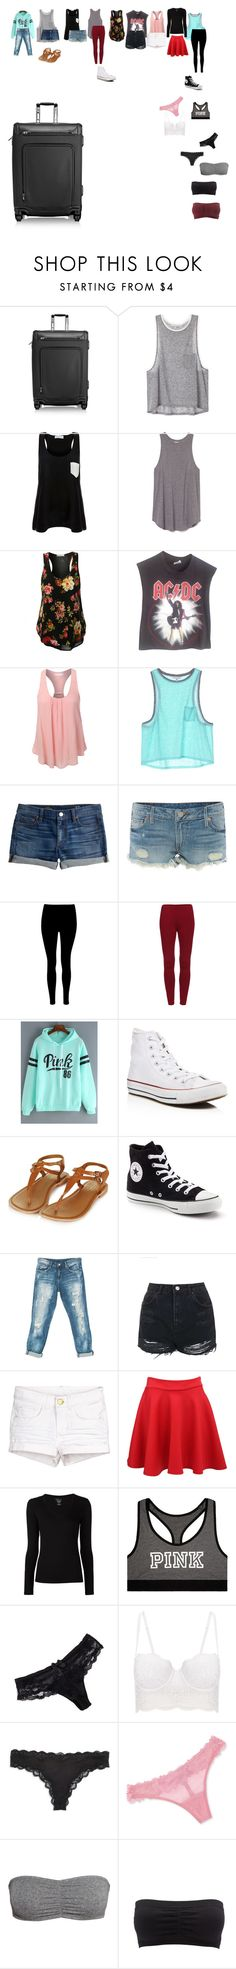 """""""Packing for San Diego"""" by cassiepresley ❤ liked on Polyvore featuring Tumi, Solid & Striped, Vintage, LE3NO, J.Crew, True Religion, Converse, Topshop, Sans Souci and Pilot"""